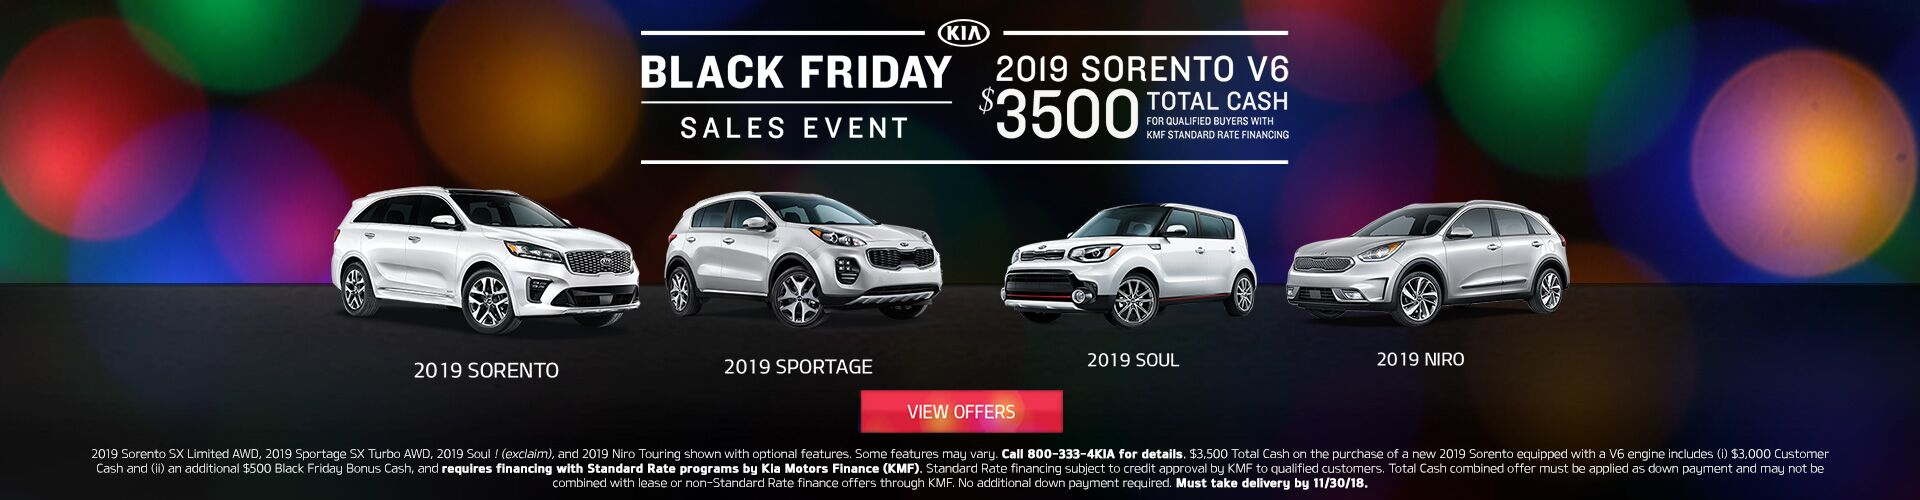 Black Friday Sales Event 201822